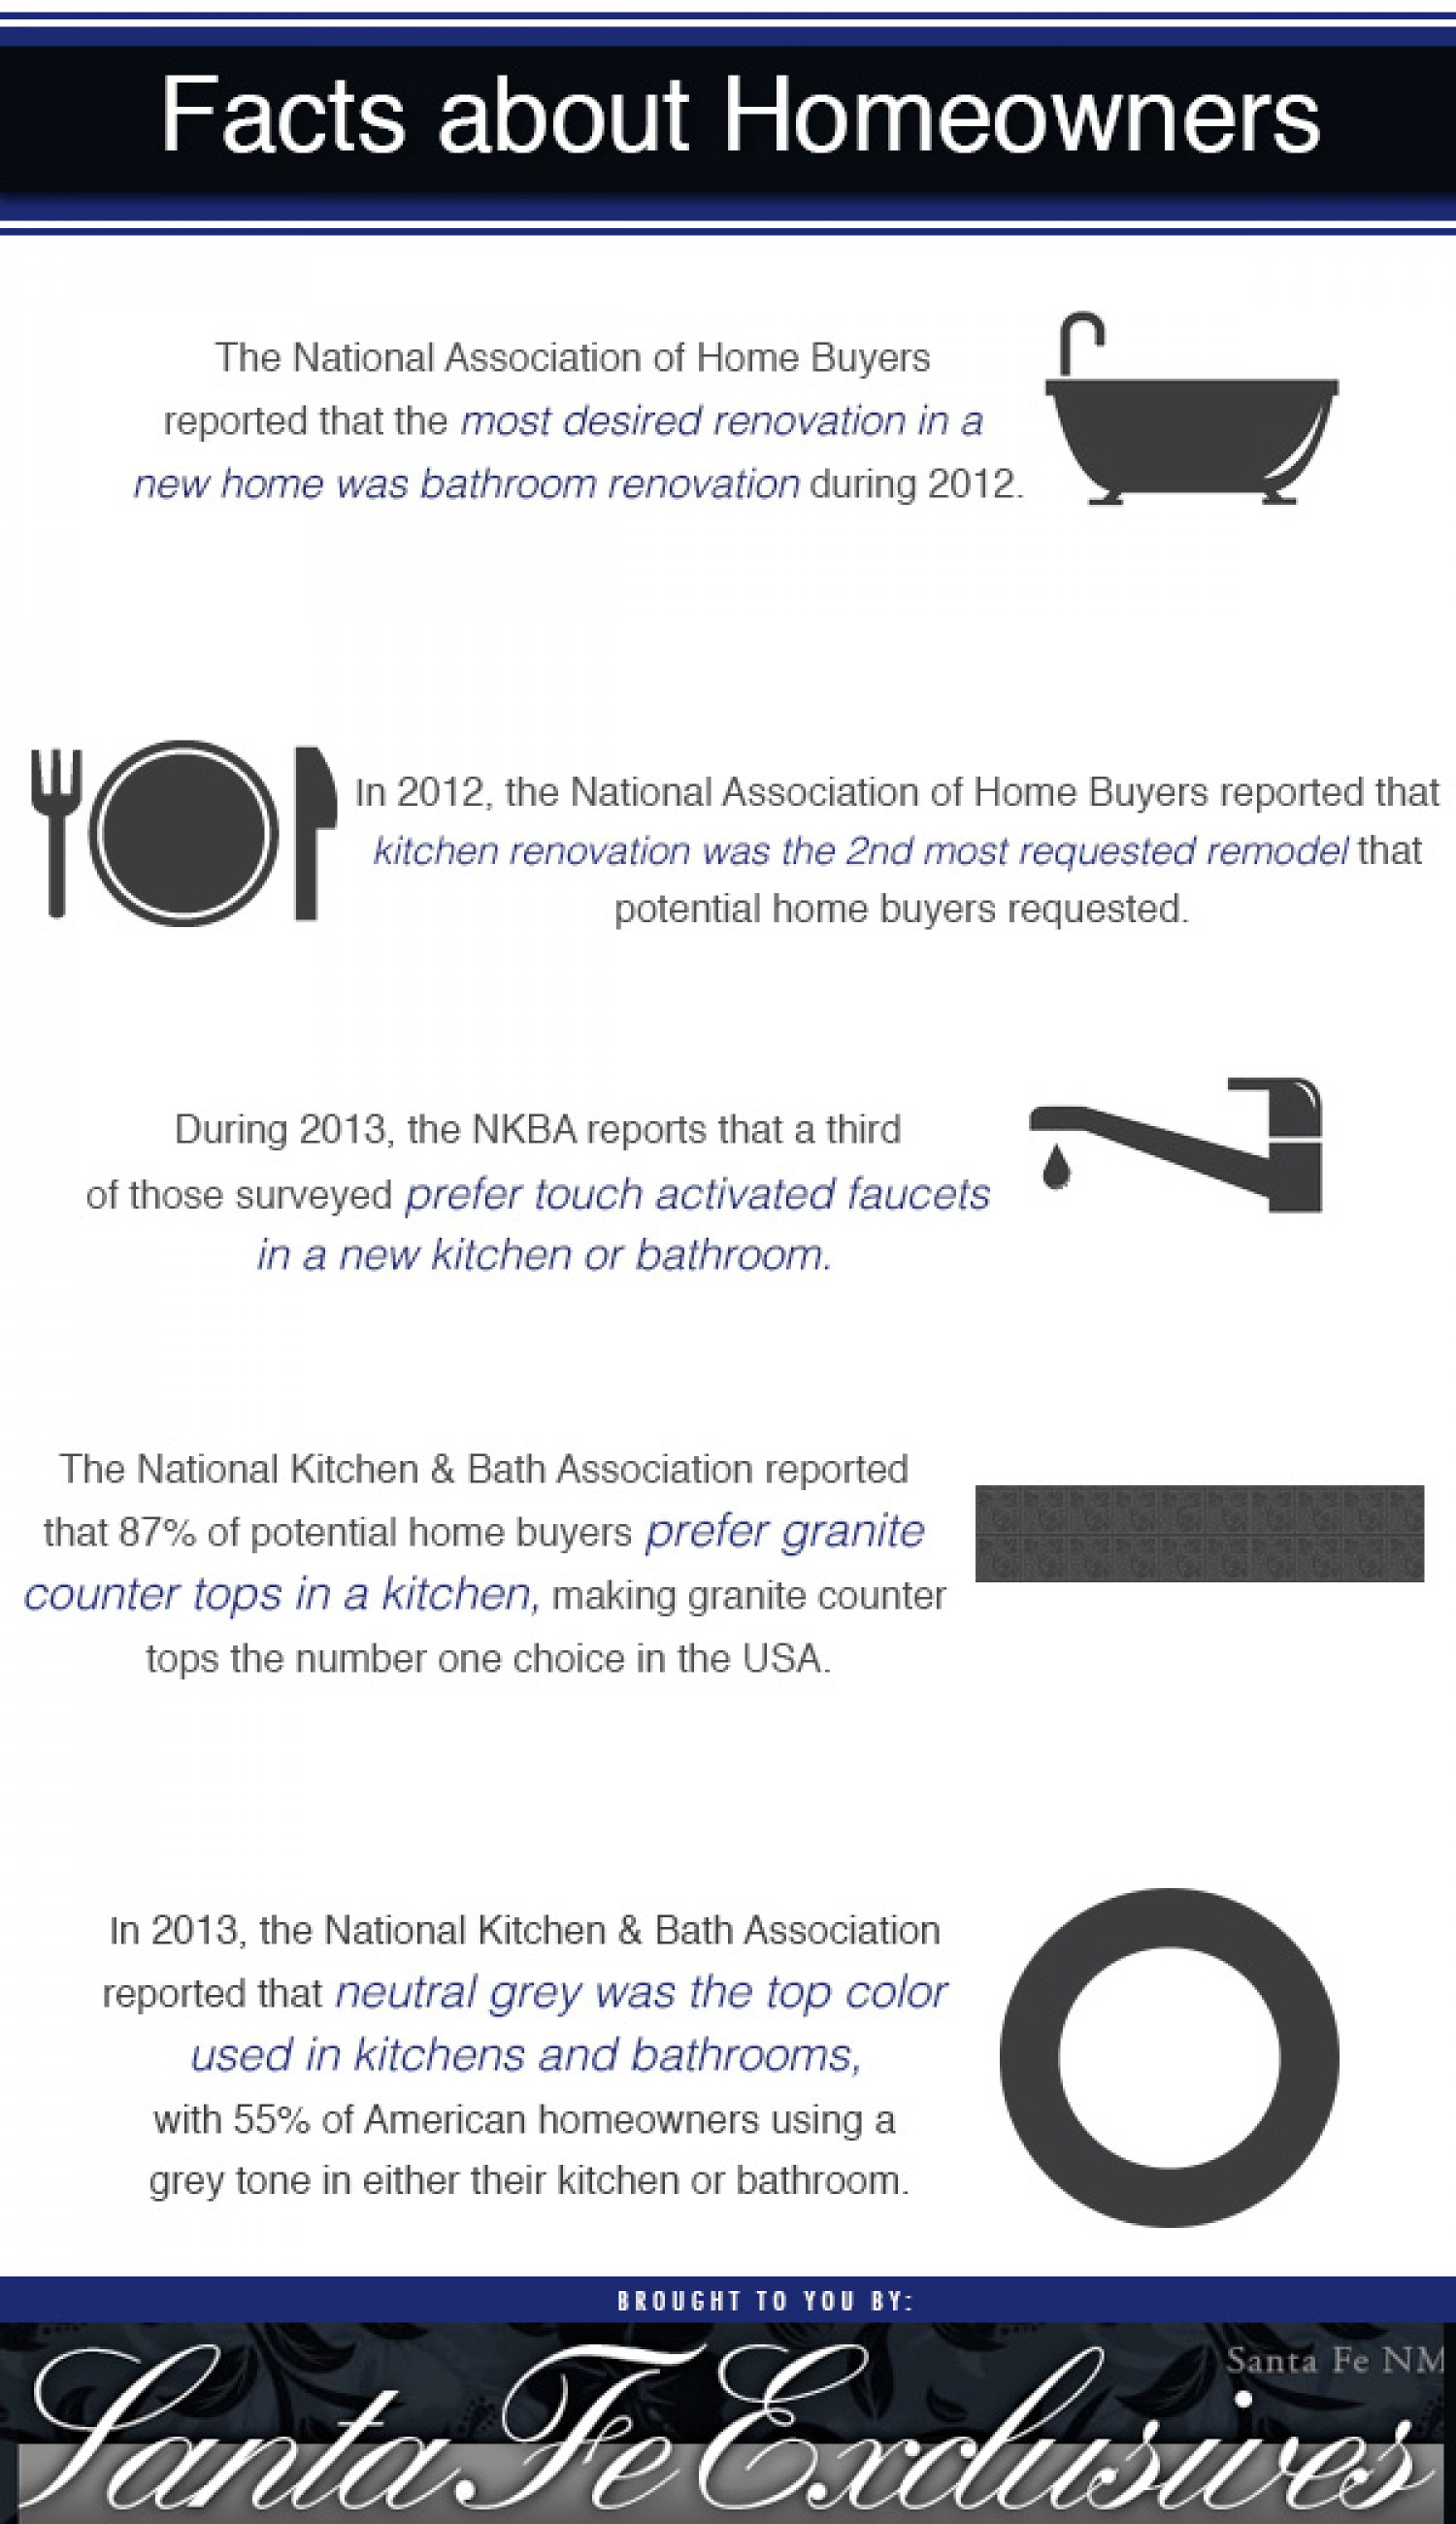 Facts About Homeowners Infographic